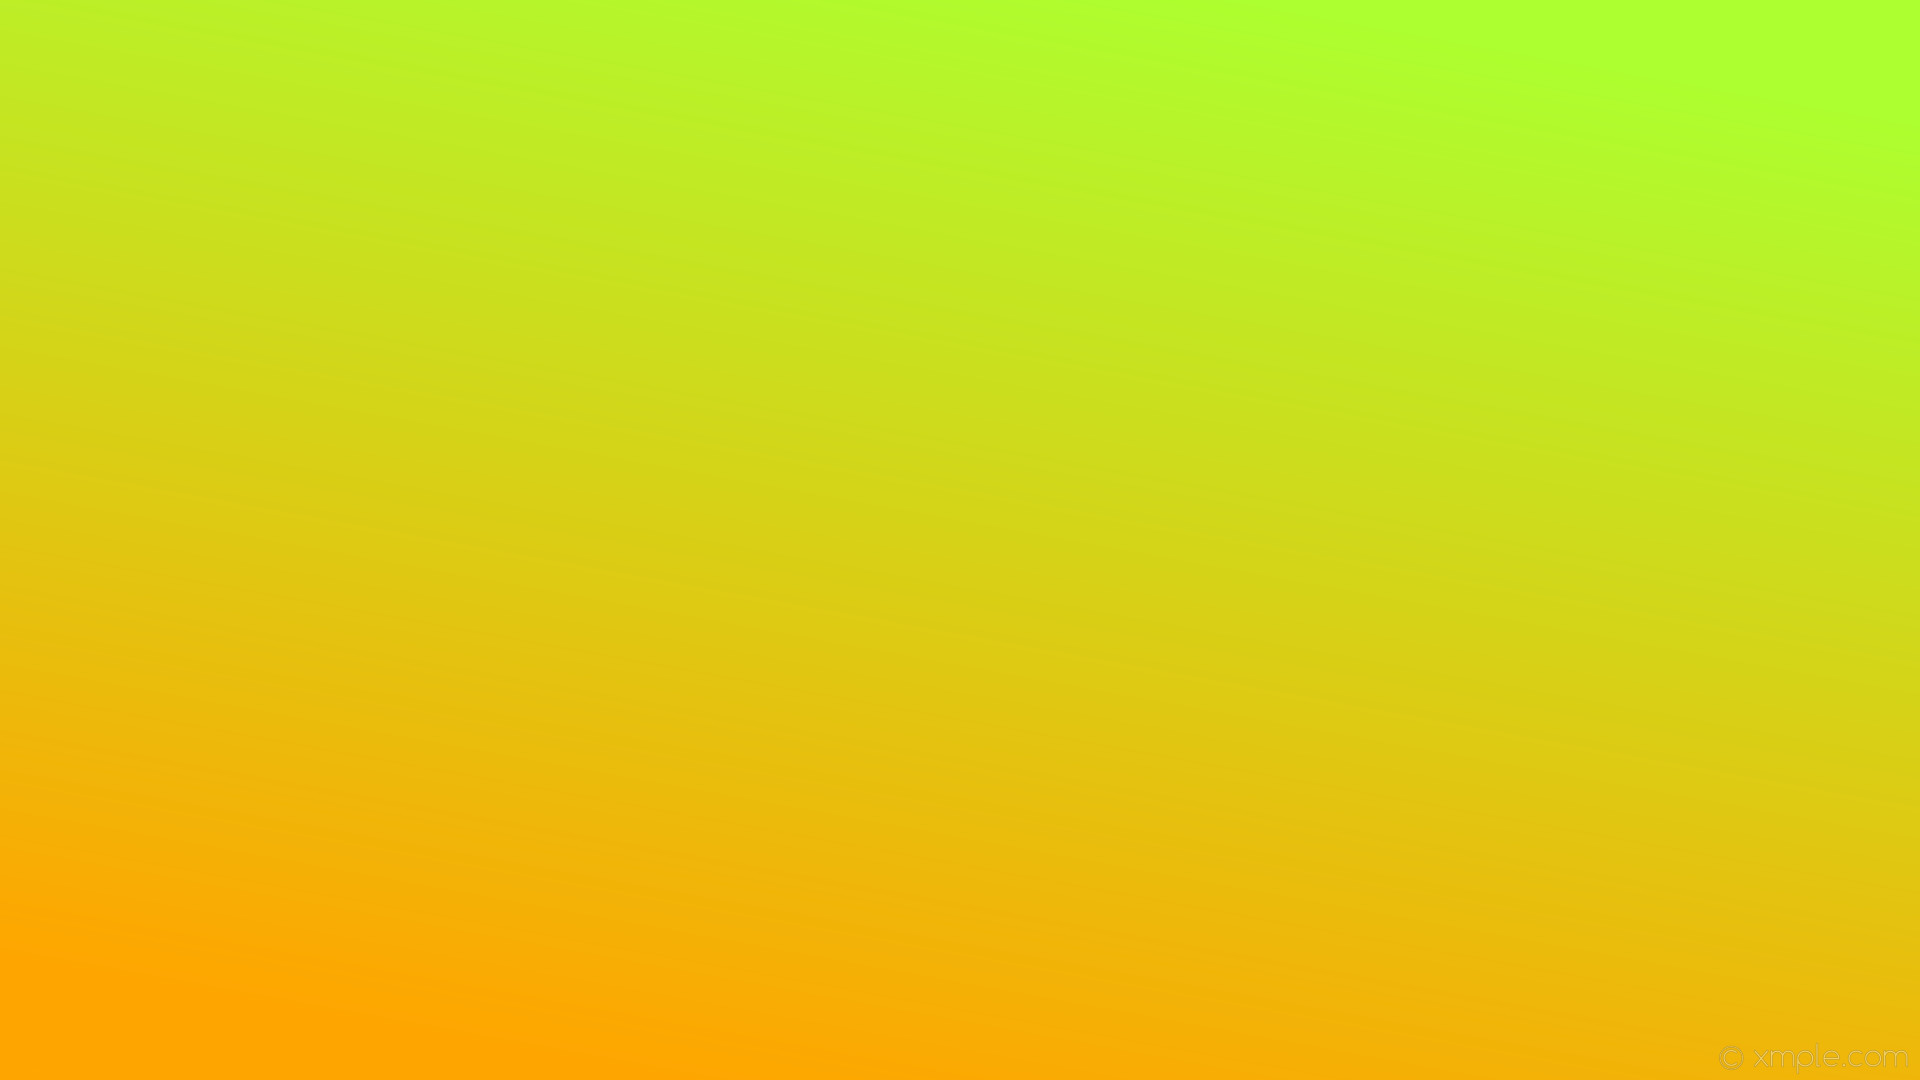 Orange And Green Wallpaper 60 Images